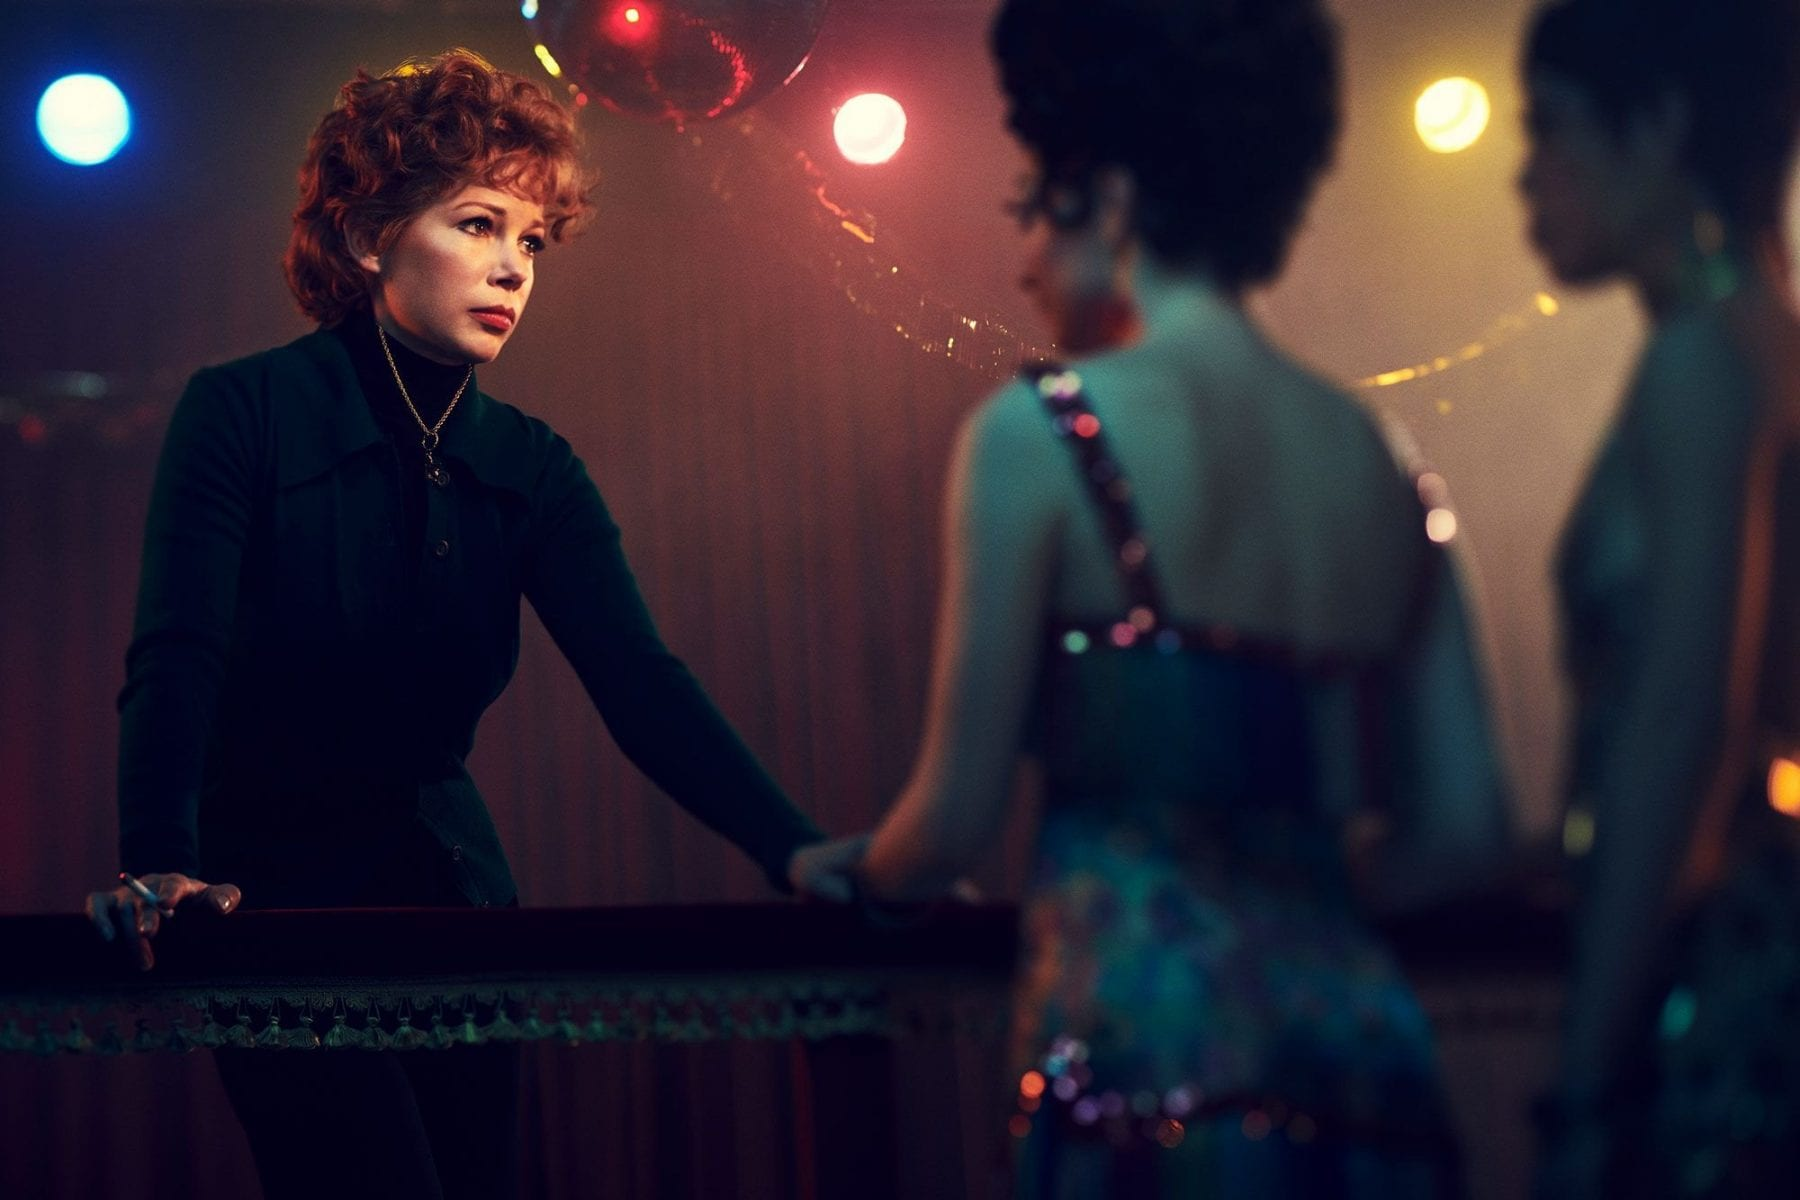 Michelle Williams as Gwen Verdon in Fosse/Verdon